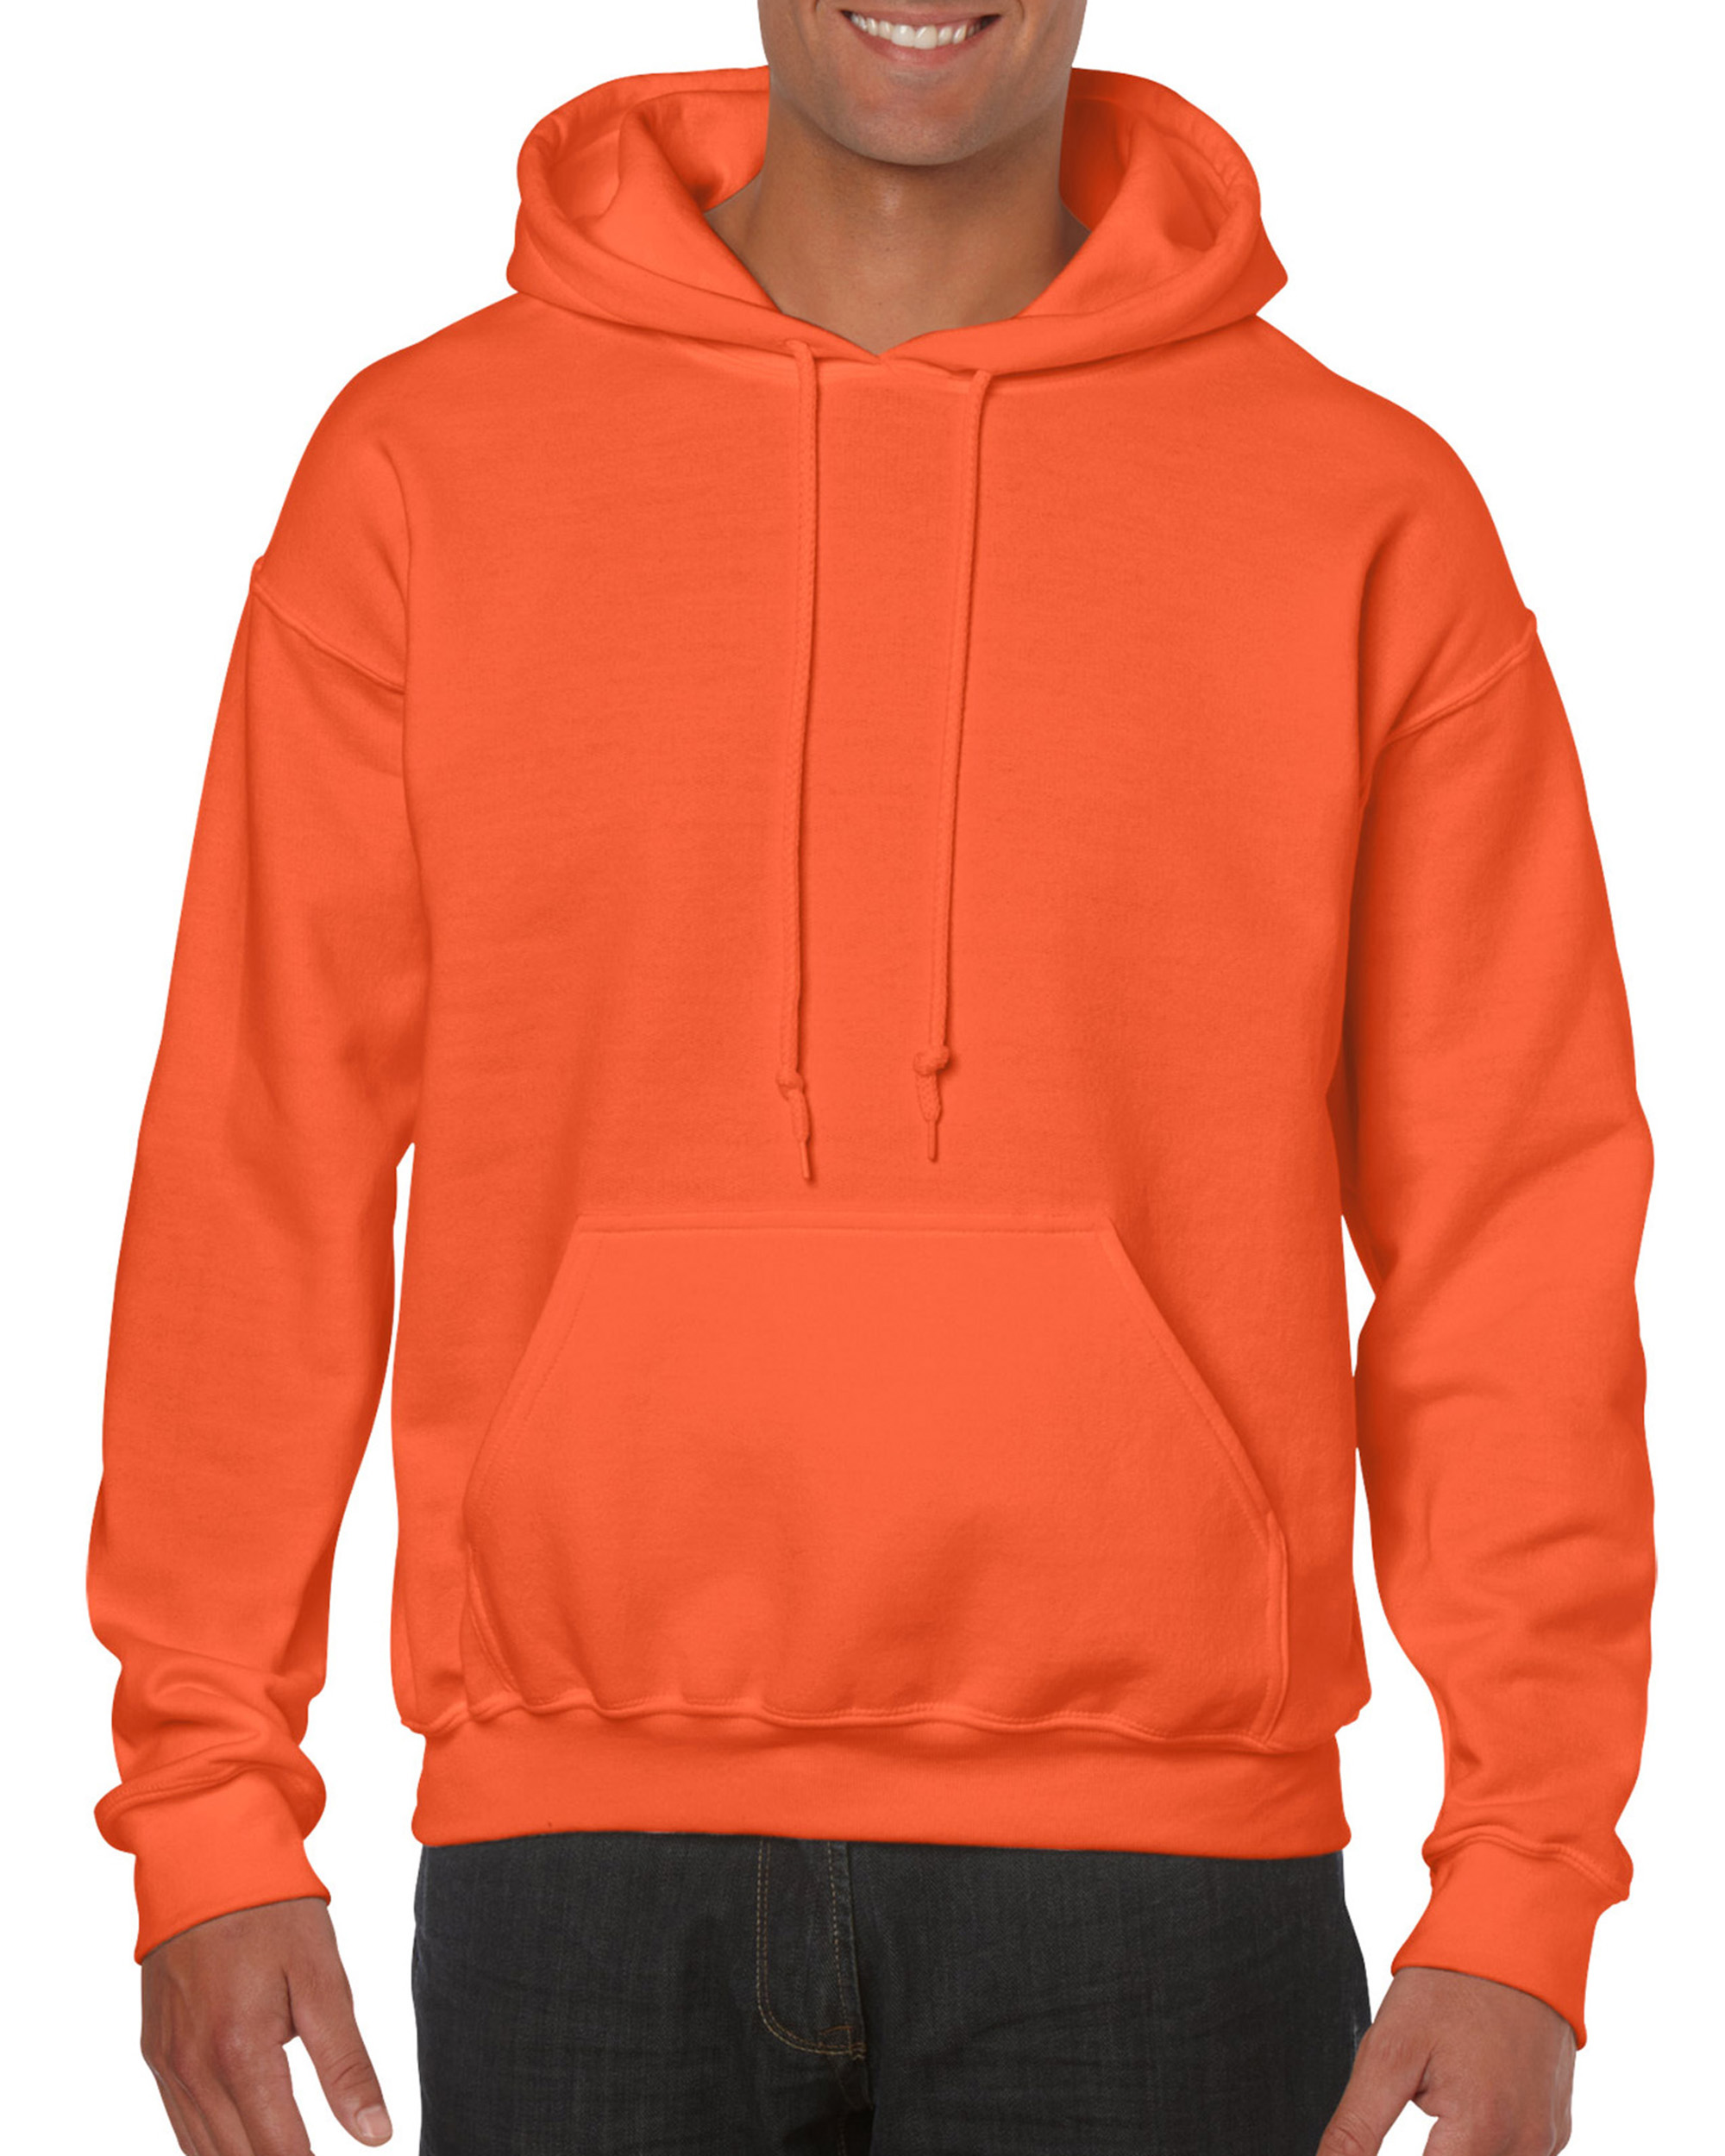 Gildan 18500 - Heavy Blend™ Hooded Sweatshirt ae9c147171